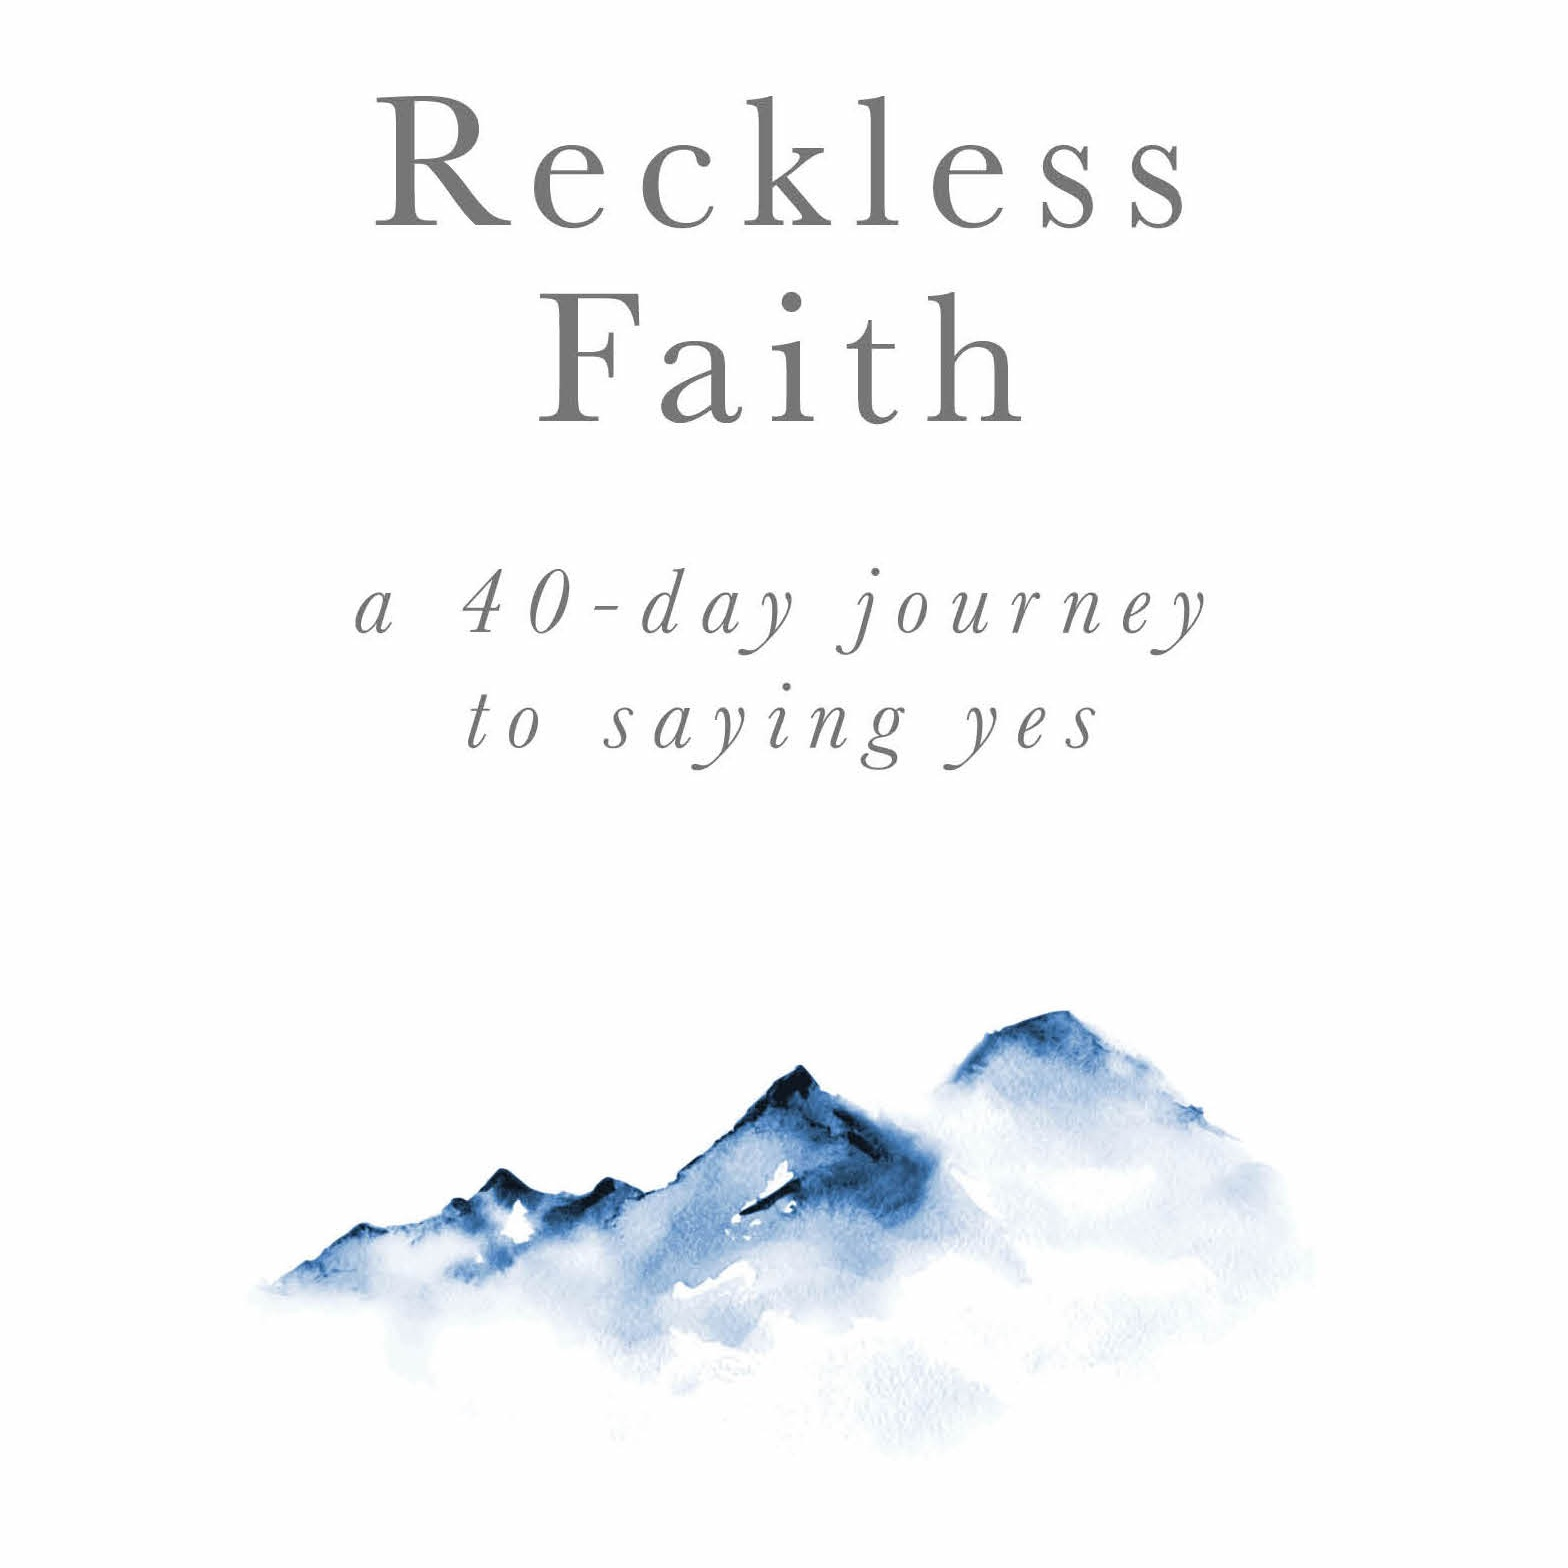 Reckless+Faith_Final+cover+5.21.19.jpg